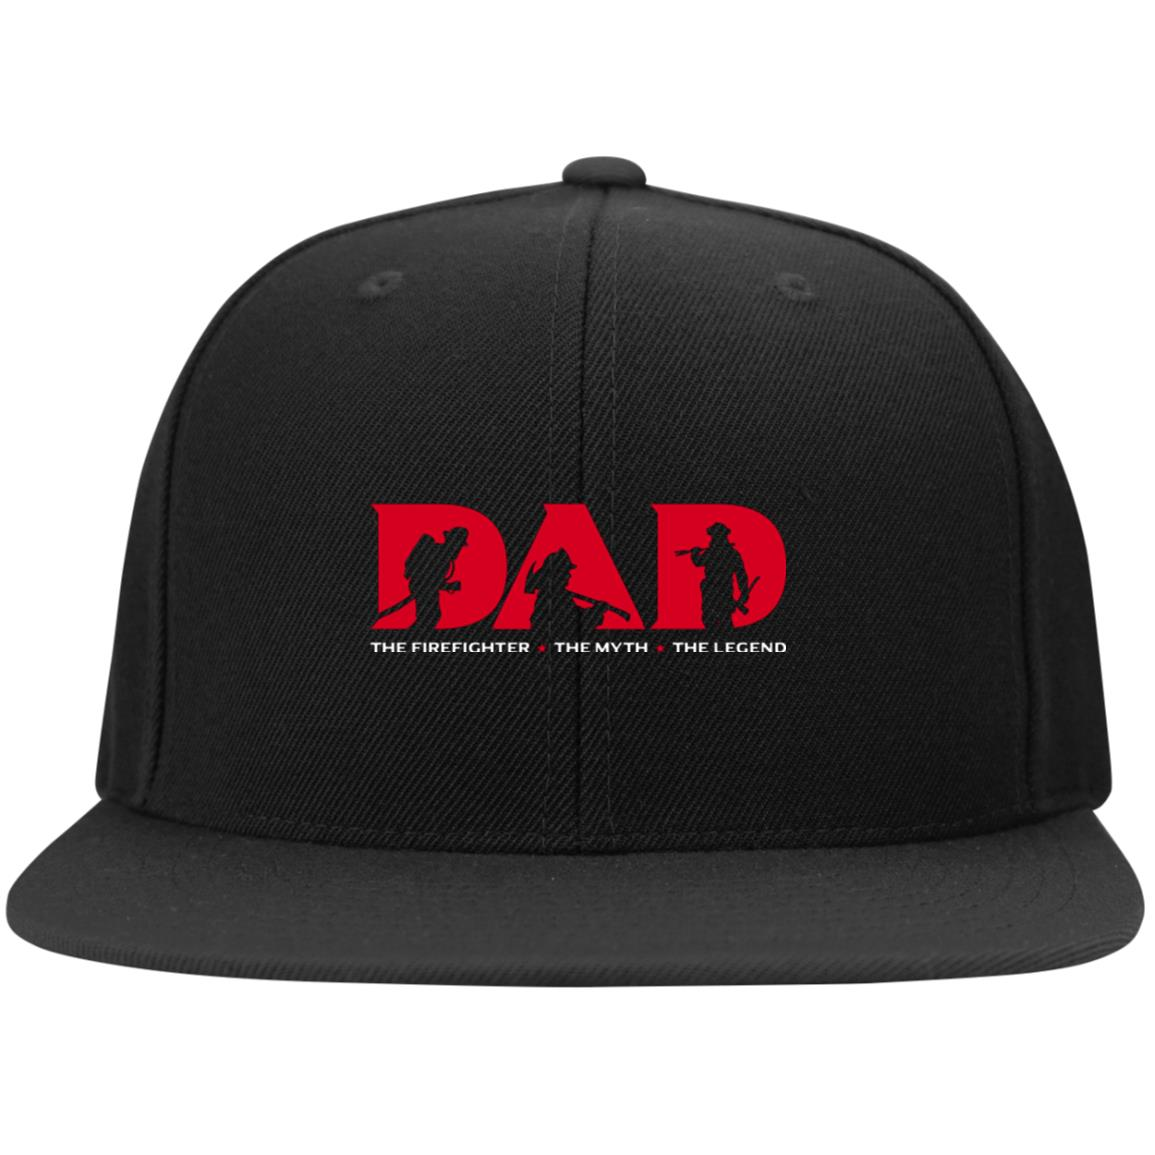 Firefighter Dad Snapback Hat - firefighter bestseller